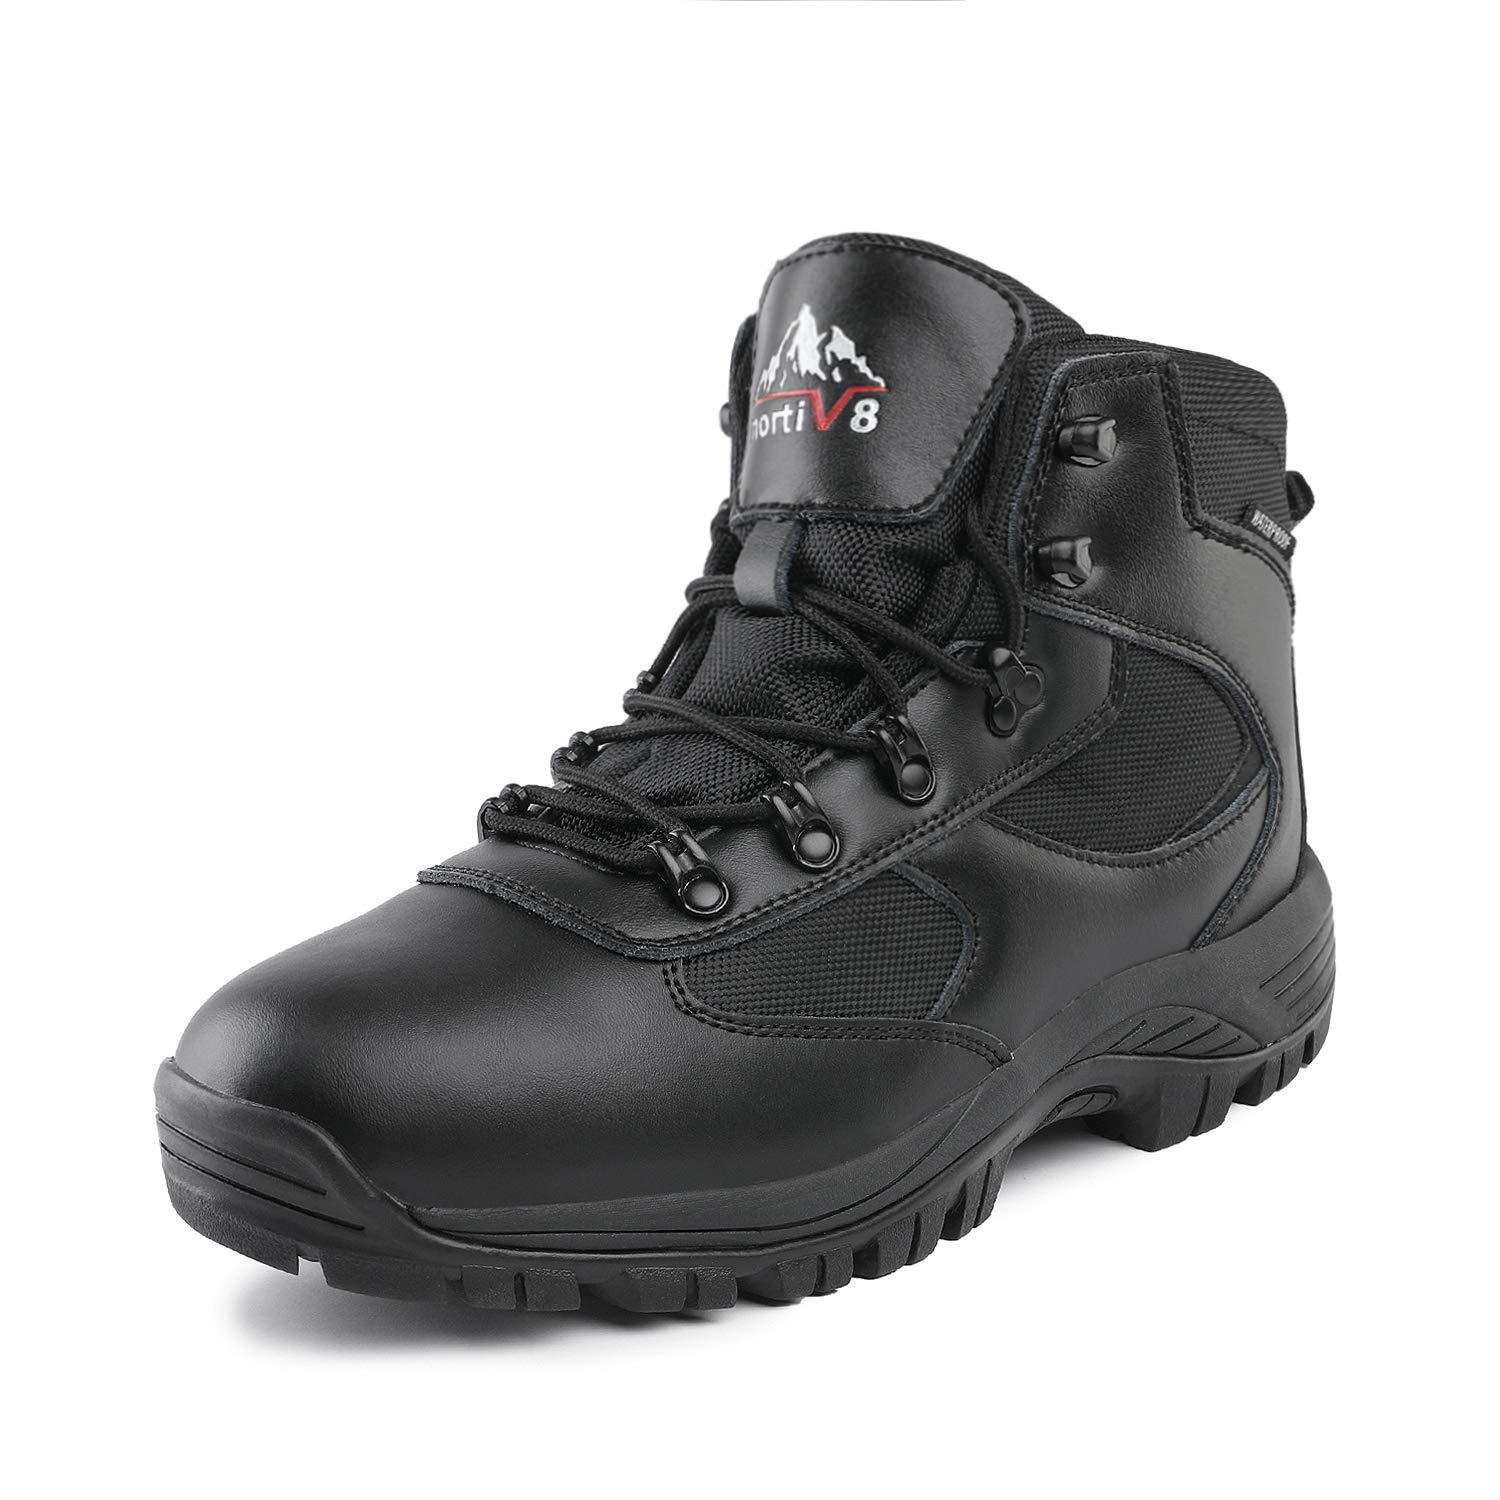 NORTIV 8 Men's Waterproof Hiking Boots Mid Outdoor Backpacking Trekking Trails Lightweight Shoes Black Size 11 M US Mack_02 by NORTIV 8